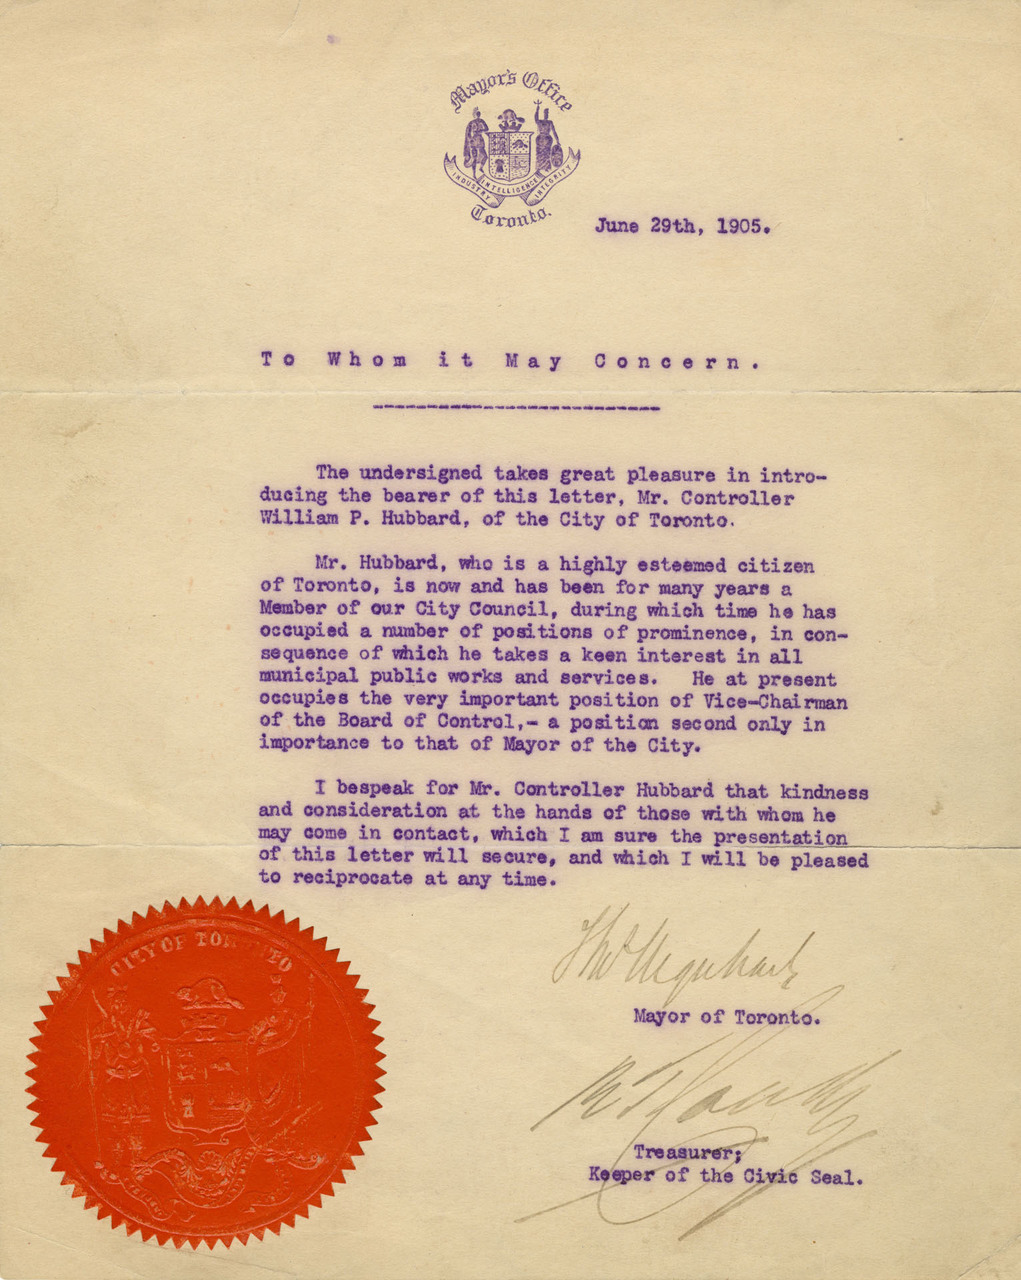 Letter Certificate by Thomas Urquhart, Mayor of Toronto to William P. Hubbard